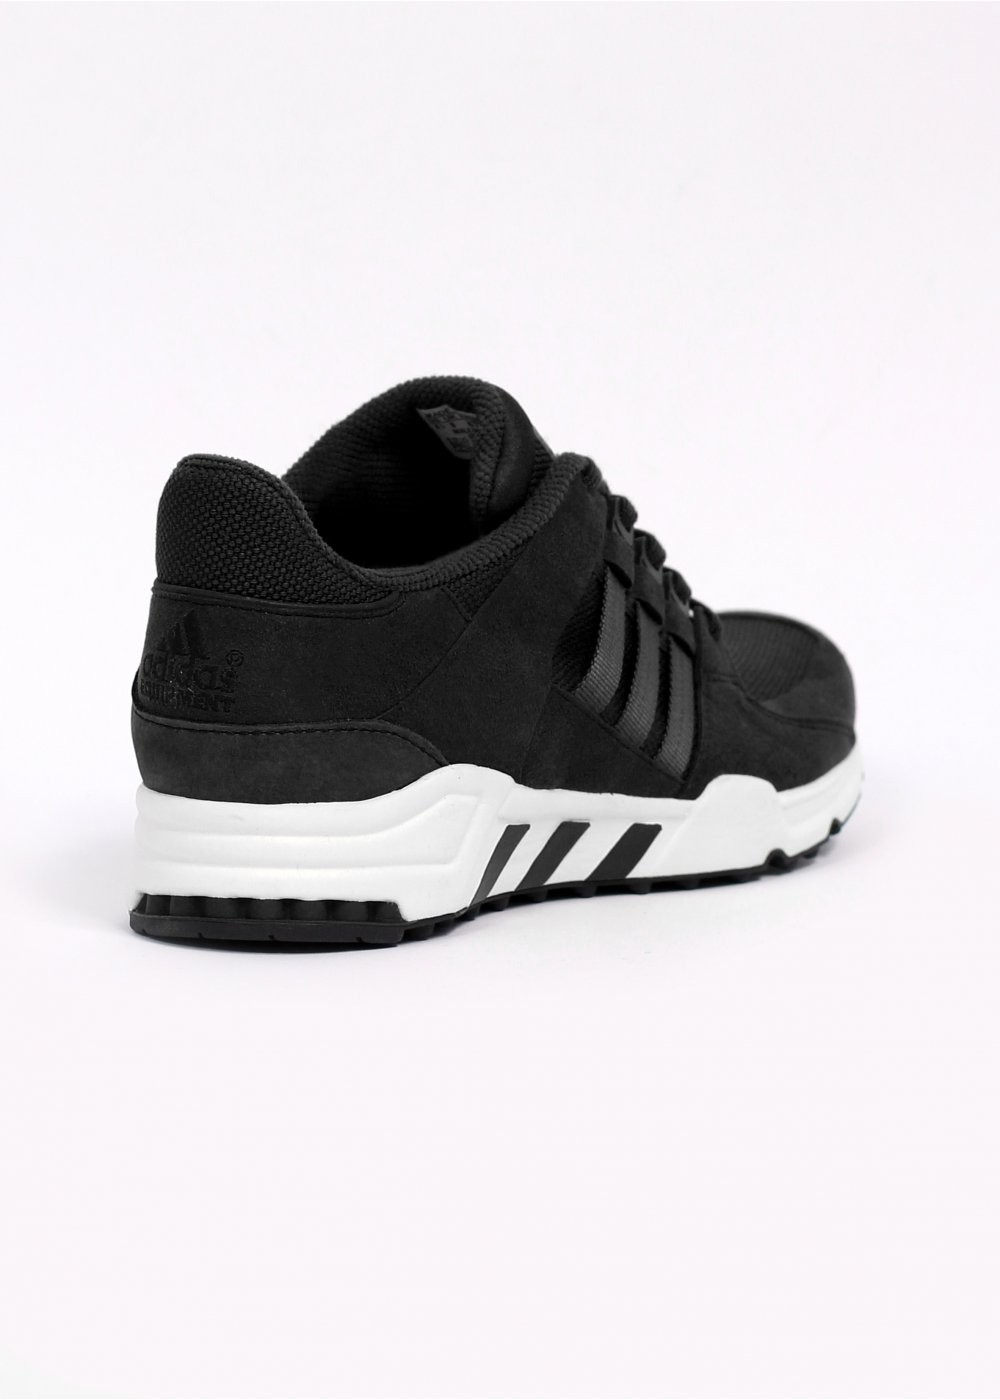 nuove trainer adidas